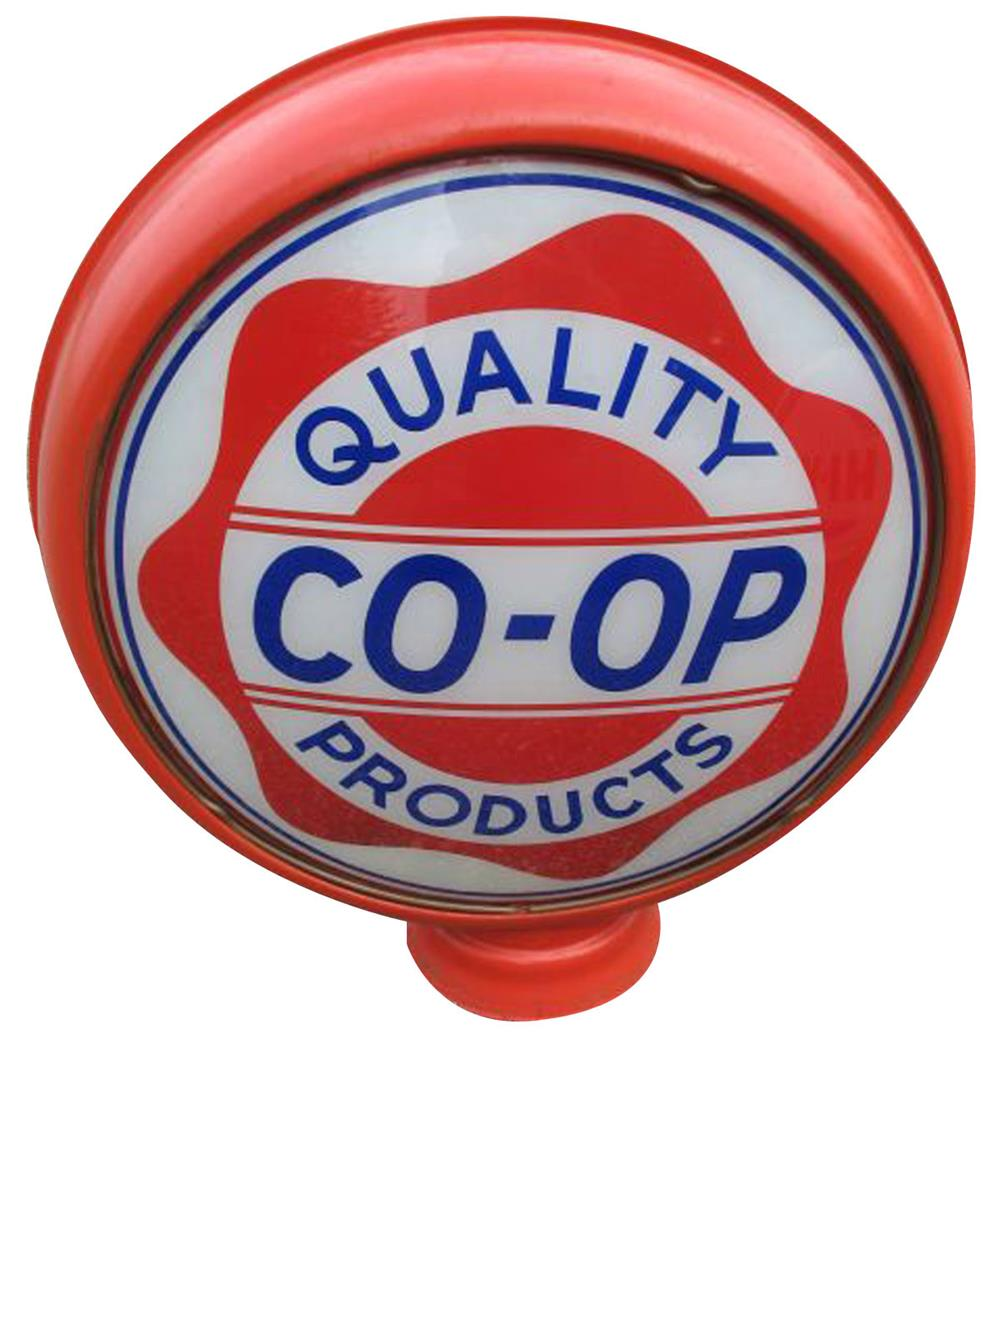 Scarce 1930s Co-op Gasoline Quality Products metal bodied gas pump globe. - Front 3/4 - 187856